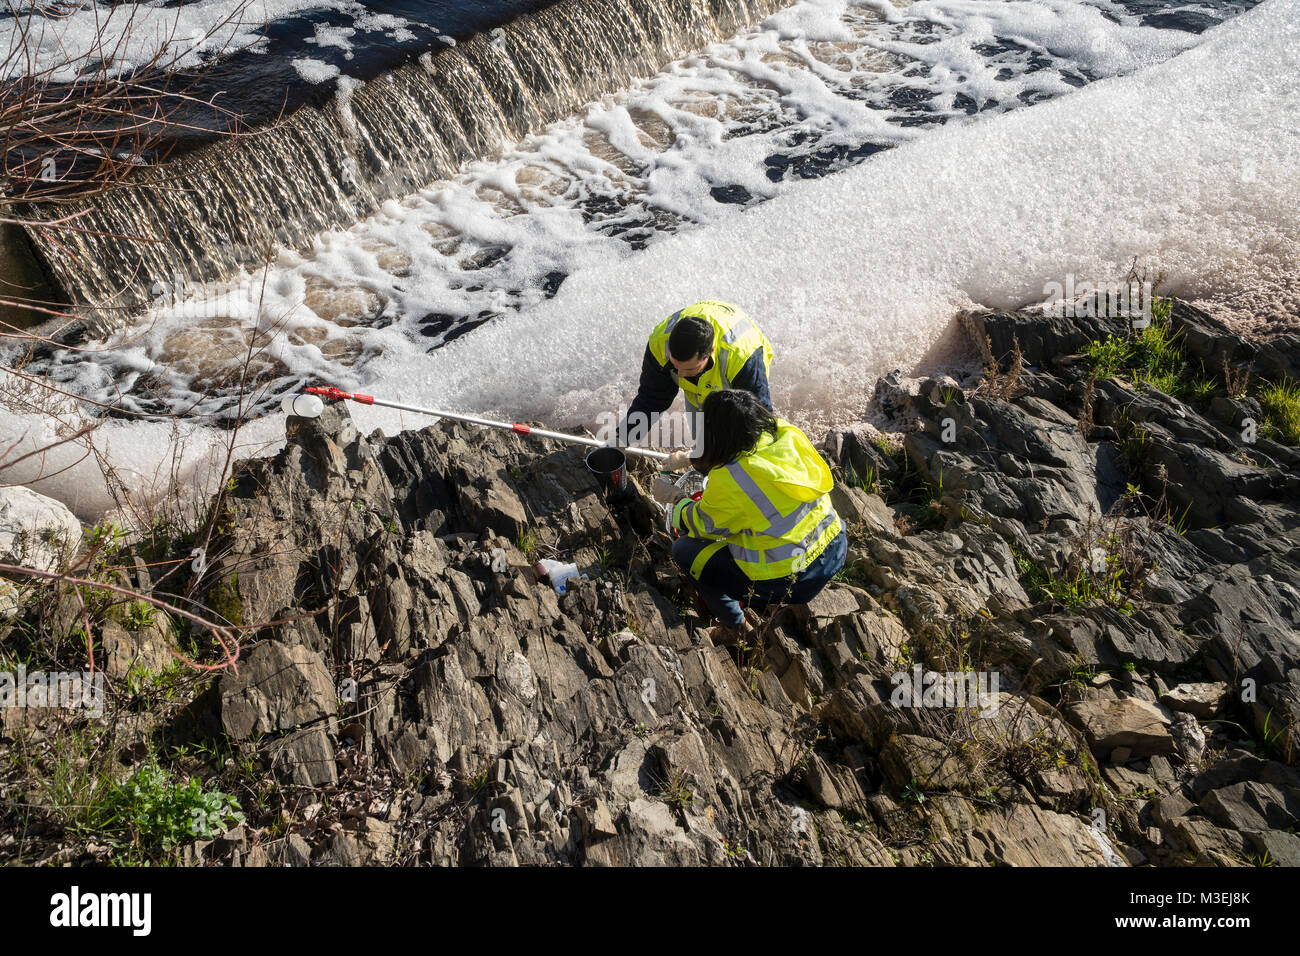 River pollution. Collection of Tejo river water samples and foam to determine the degree of pollution caused by - Stock Image